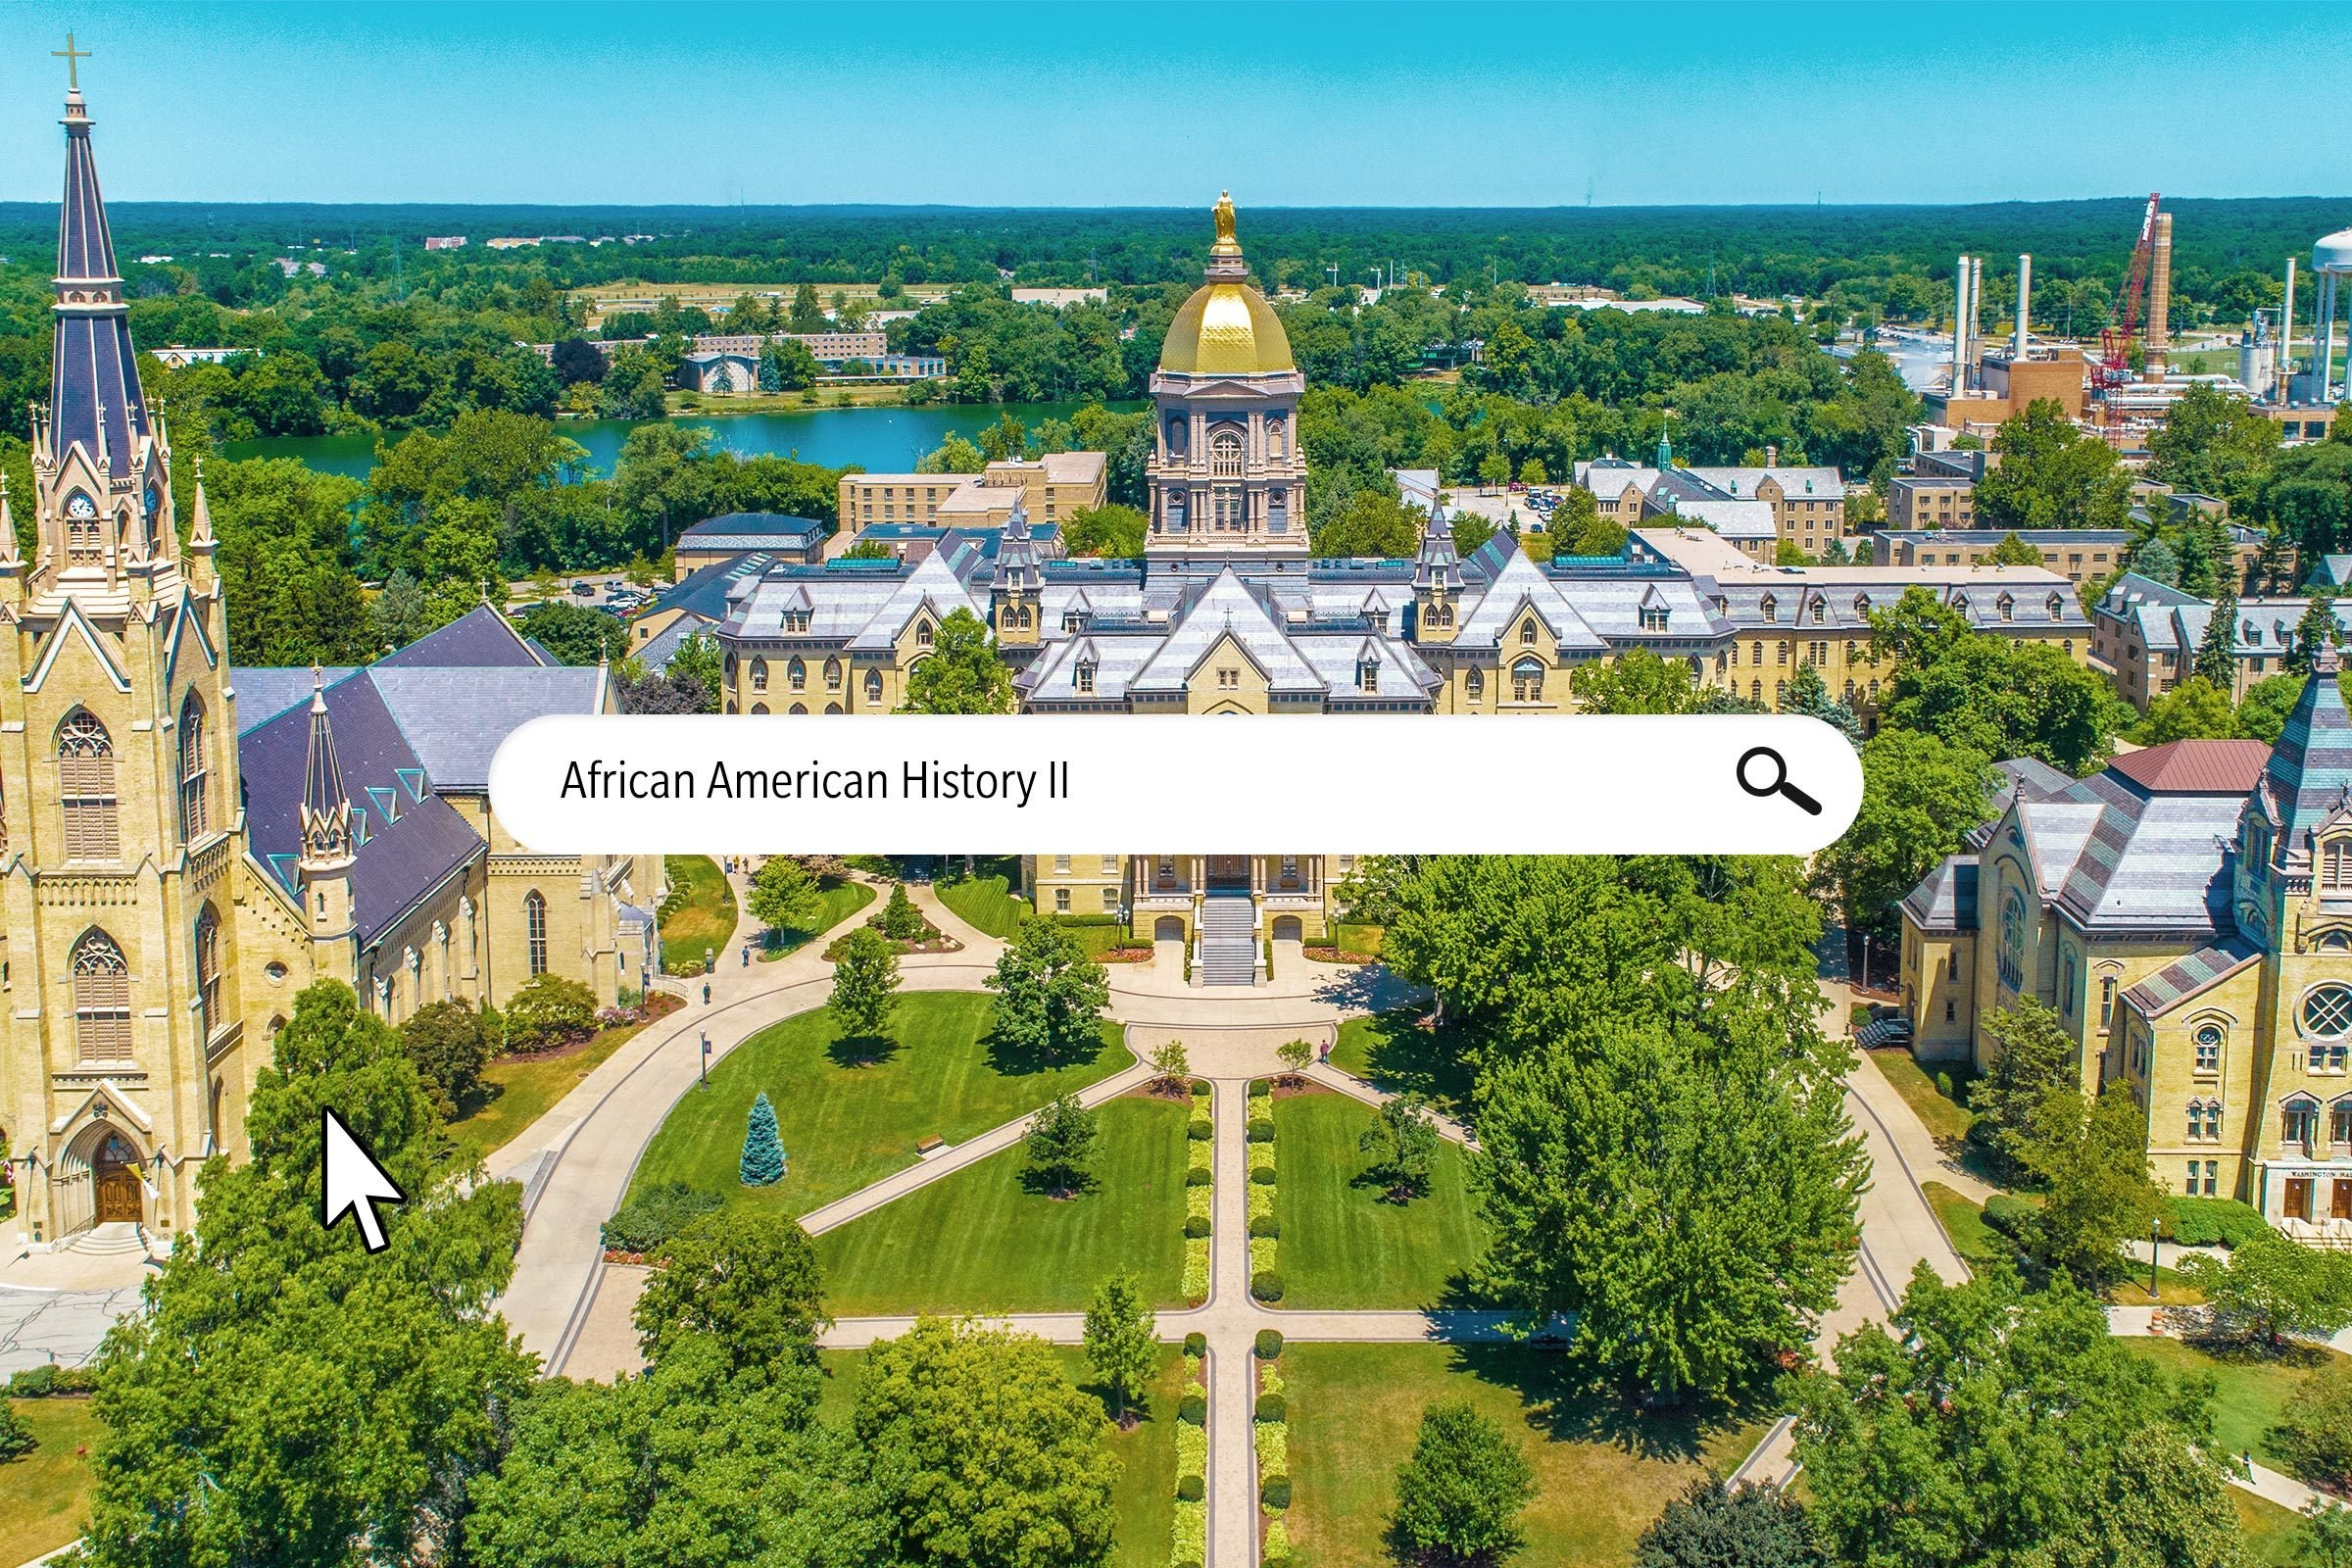 African American History II (Notre Dame)